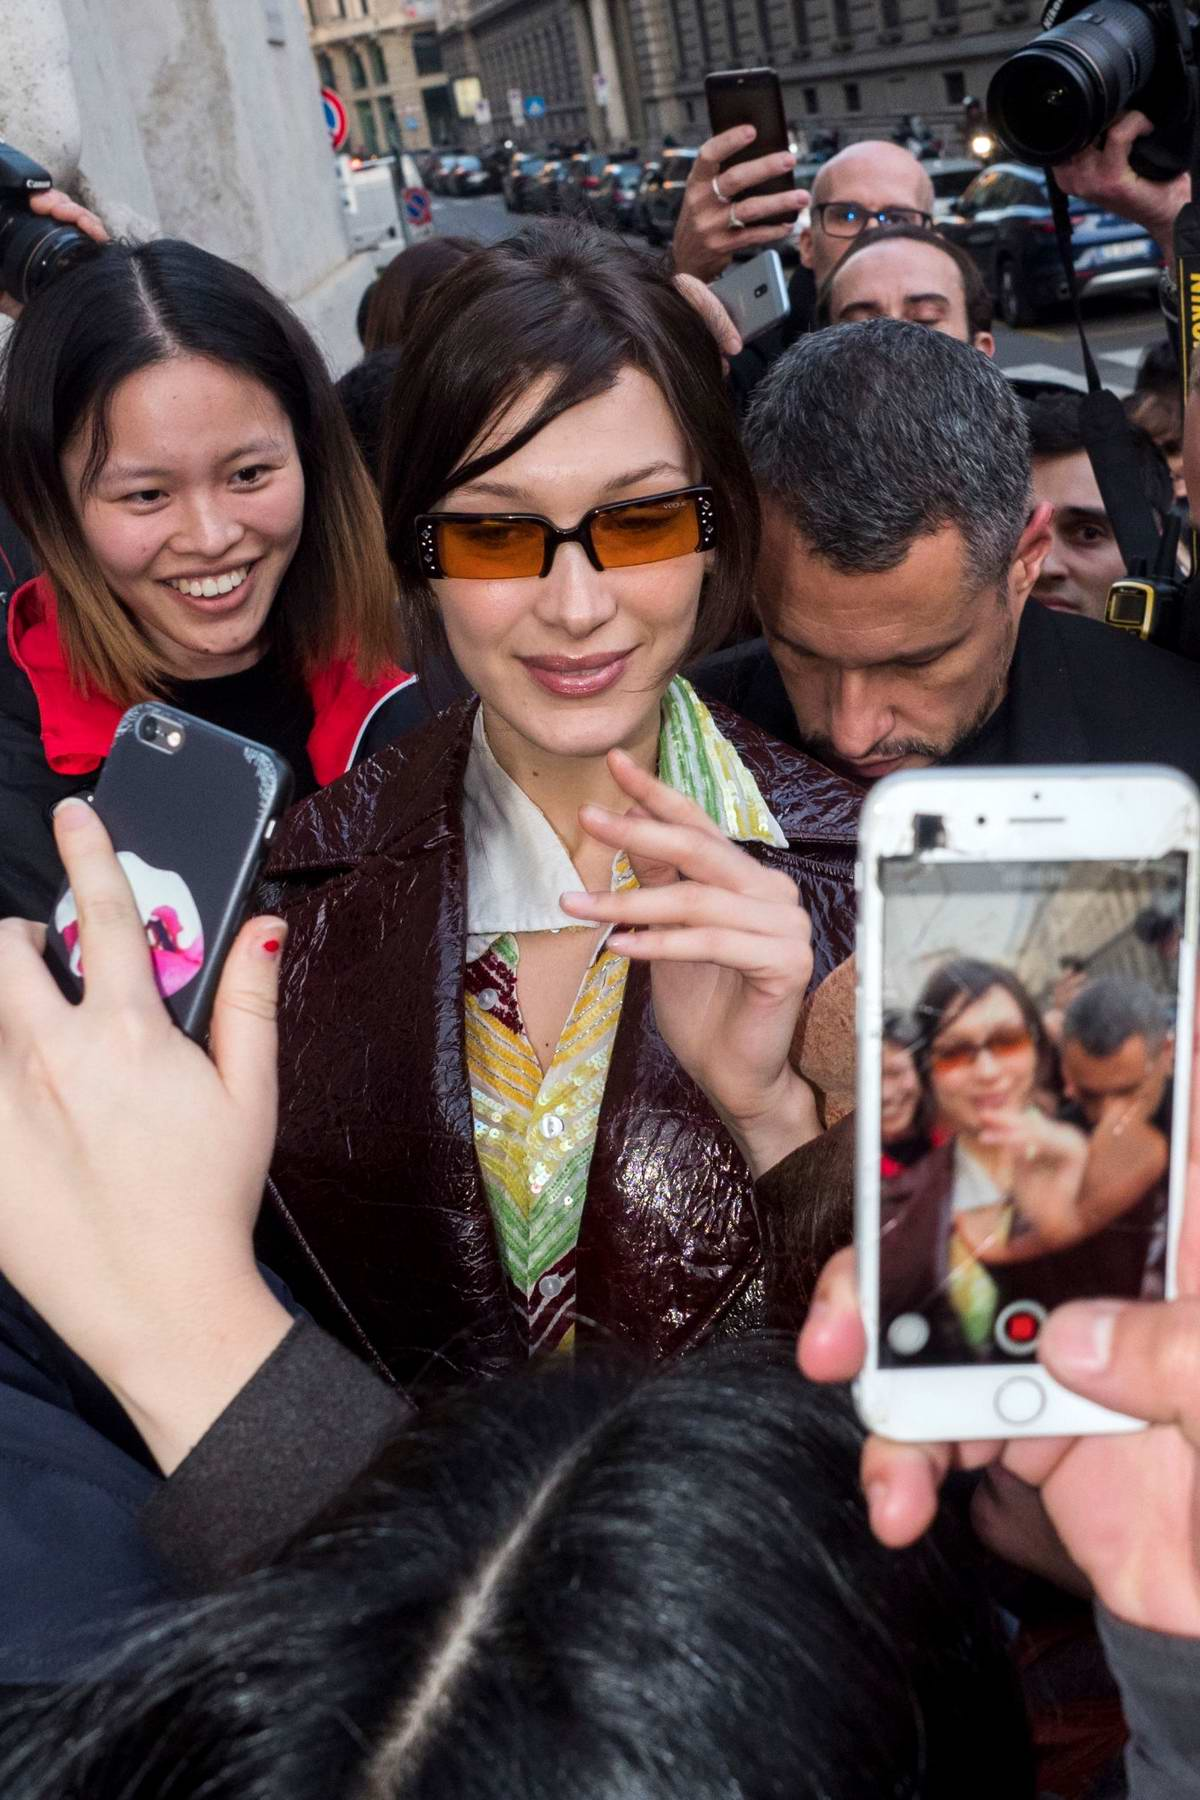 Bella Hadid greet her fans as she arrives at the Versace Fashion Show during Milan Fashion Week in Milan, Italy